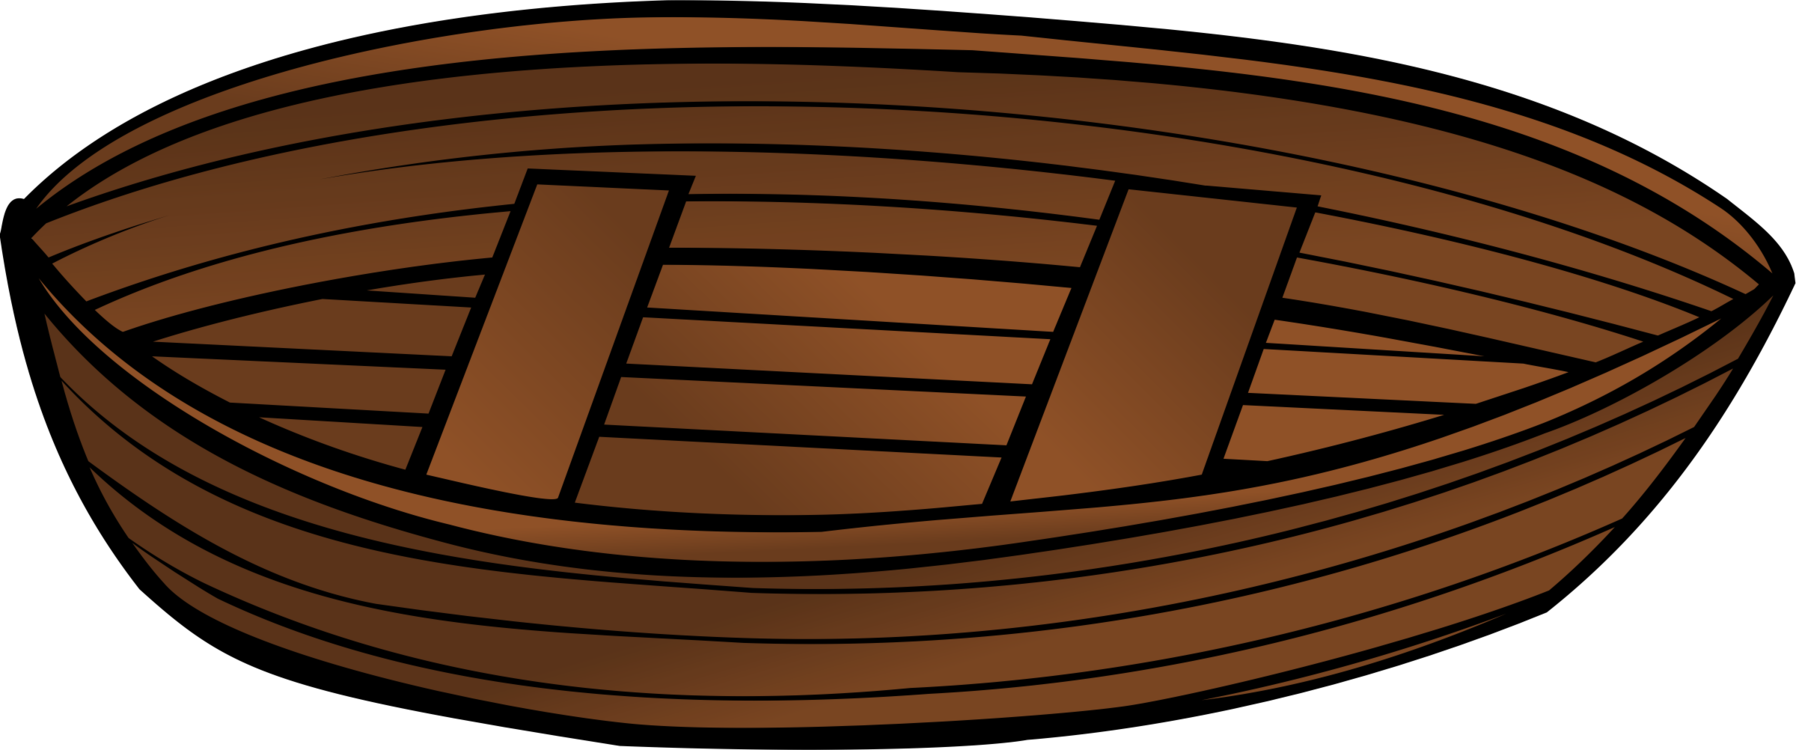 Sailboat clipart brown. Rowing boat oar canoe